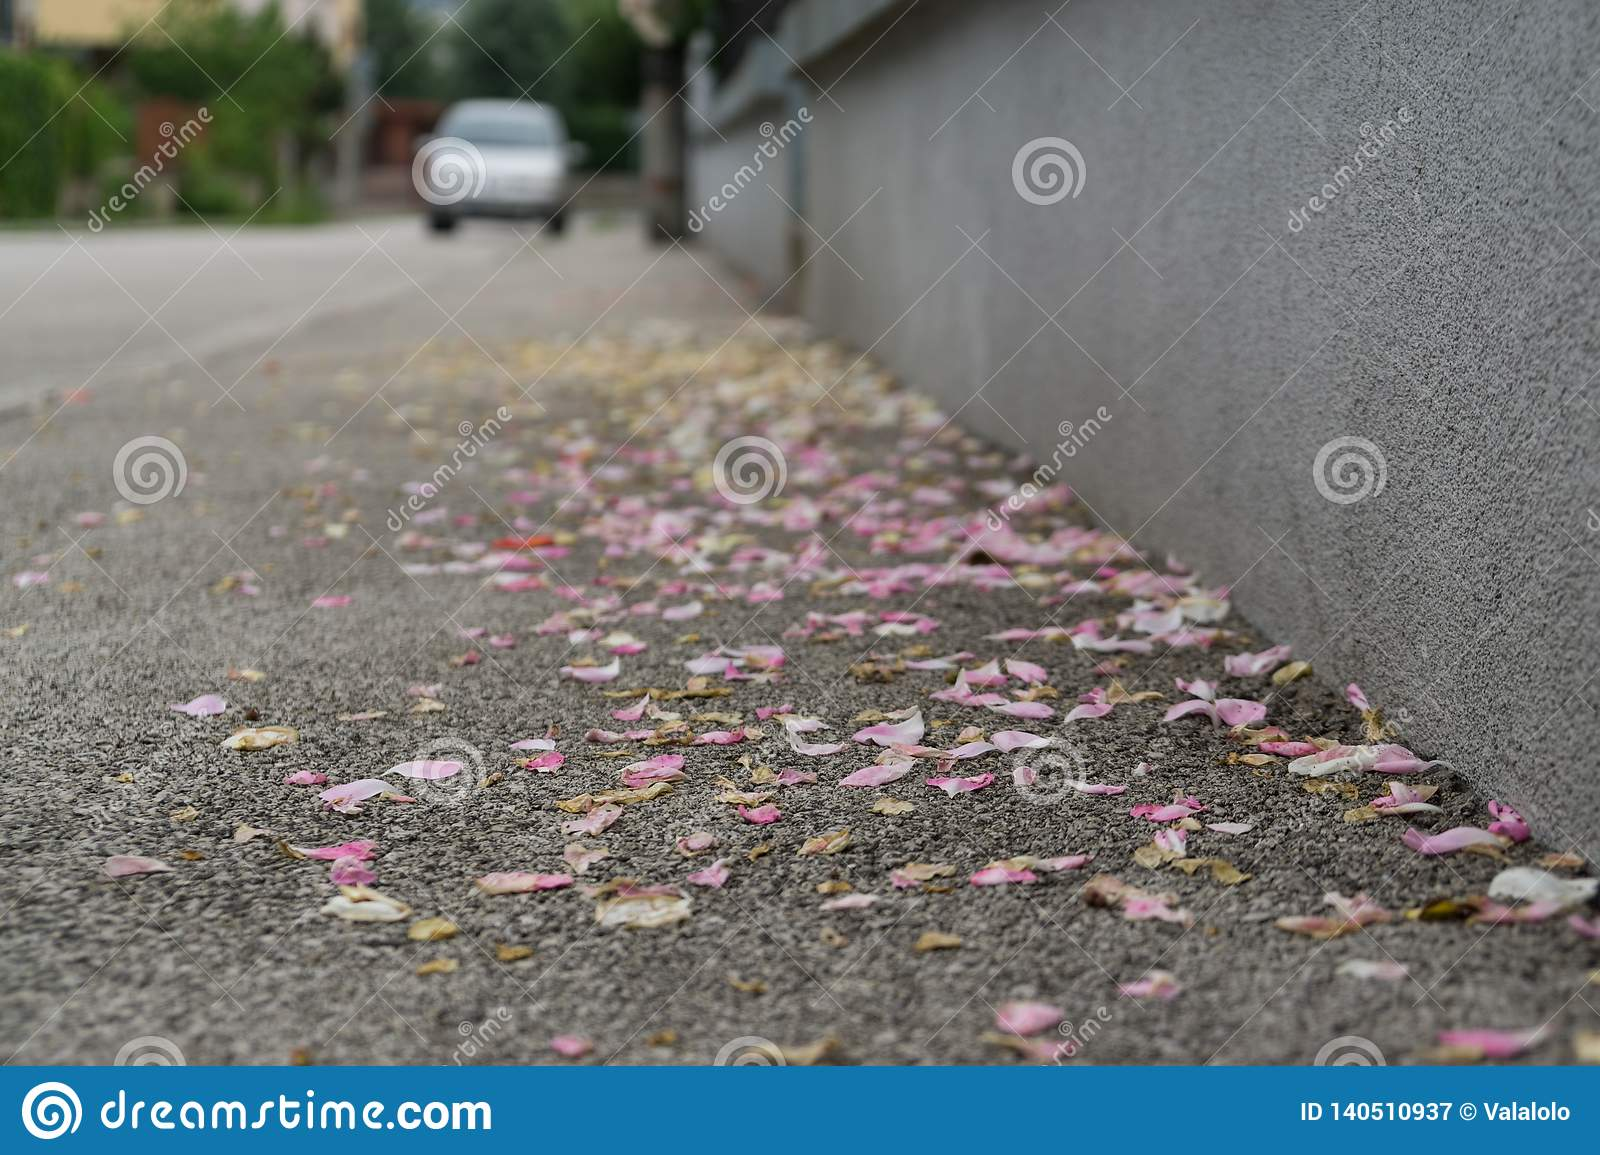 Rose petals on the road. Slovakia